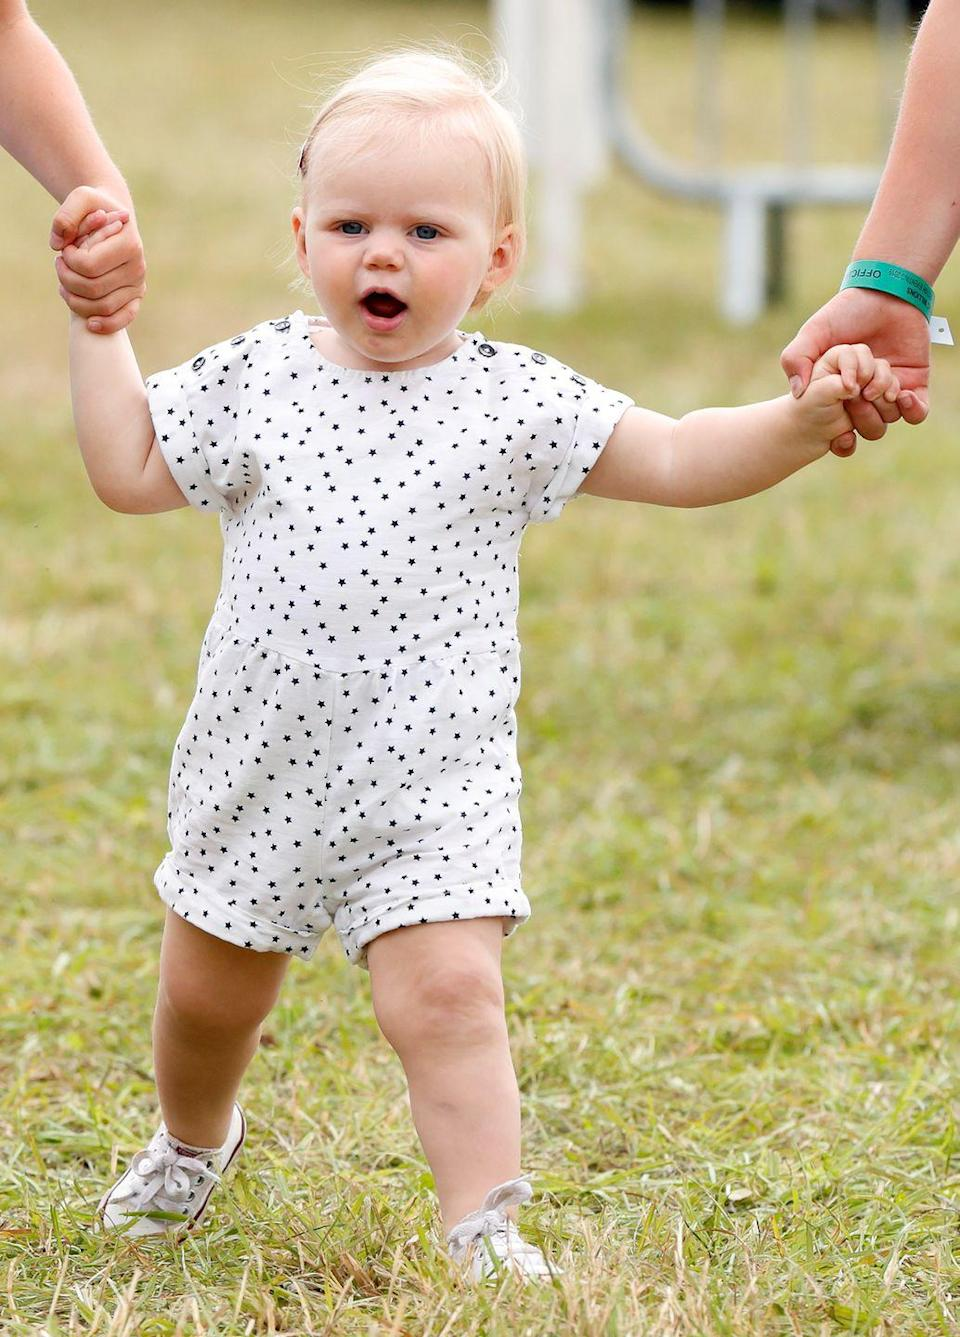 """<p><strong>What's her full name? </strong>Lena Elizabeth Tindall.</p><p><strong>Who's she named after? </strong>Another Elizabeth! The Queen's name is clearly very popular. </p><p><strong>Her parents are: </strong><a href=""""https://www.cosmopolitan.com/uk/interiors/a35382850/zara-mike-tindall-home-unlike-royal-homes/"""" rel=""""nofollow noopener"""" target=""""_blank"""" data-ylk=""""slk:Zara (Princess Anne's daughter) and Mike Tindall."""" class=""""link rapid-noclick-resp"""">Zara (Princess Anne's daughter) and Mike Tindall.</a></p>"""